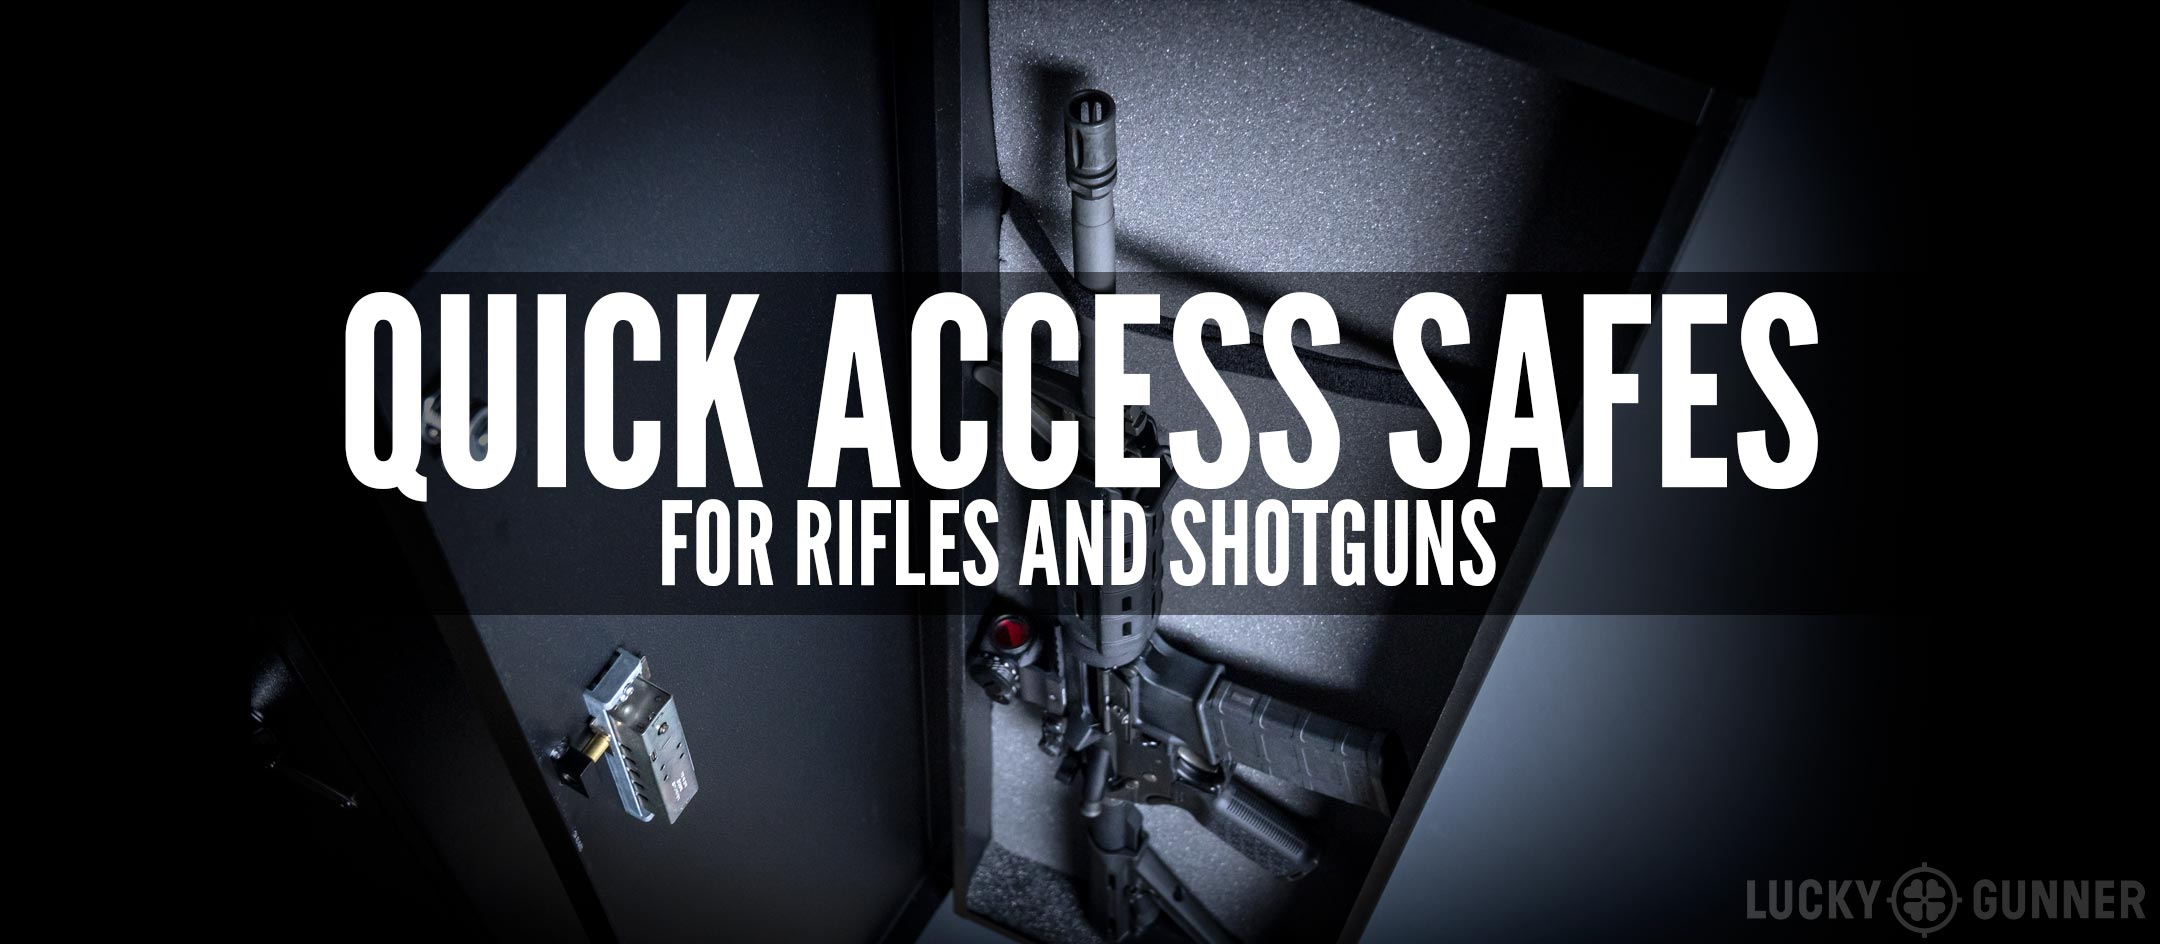 Cheap Safes The Best And Worst Quick Access Safes For Rifles And Shotguns